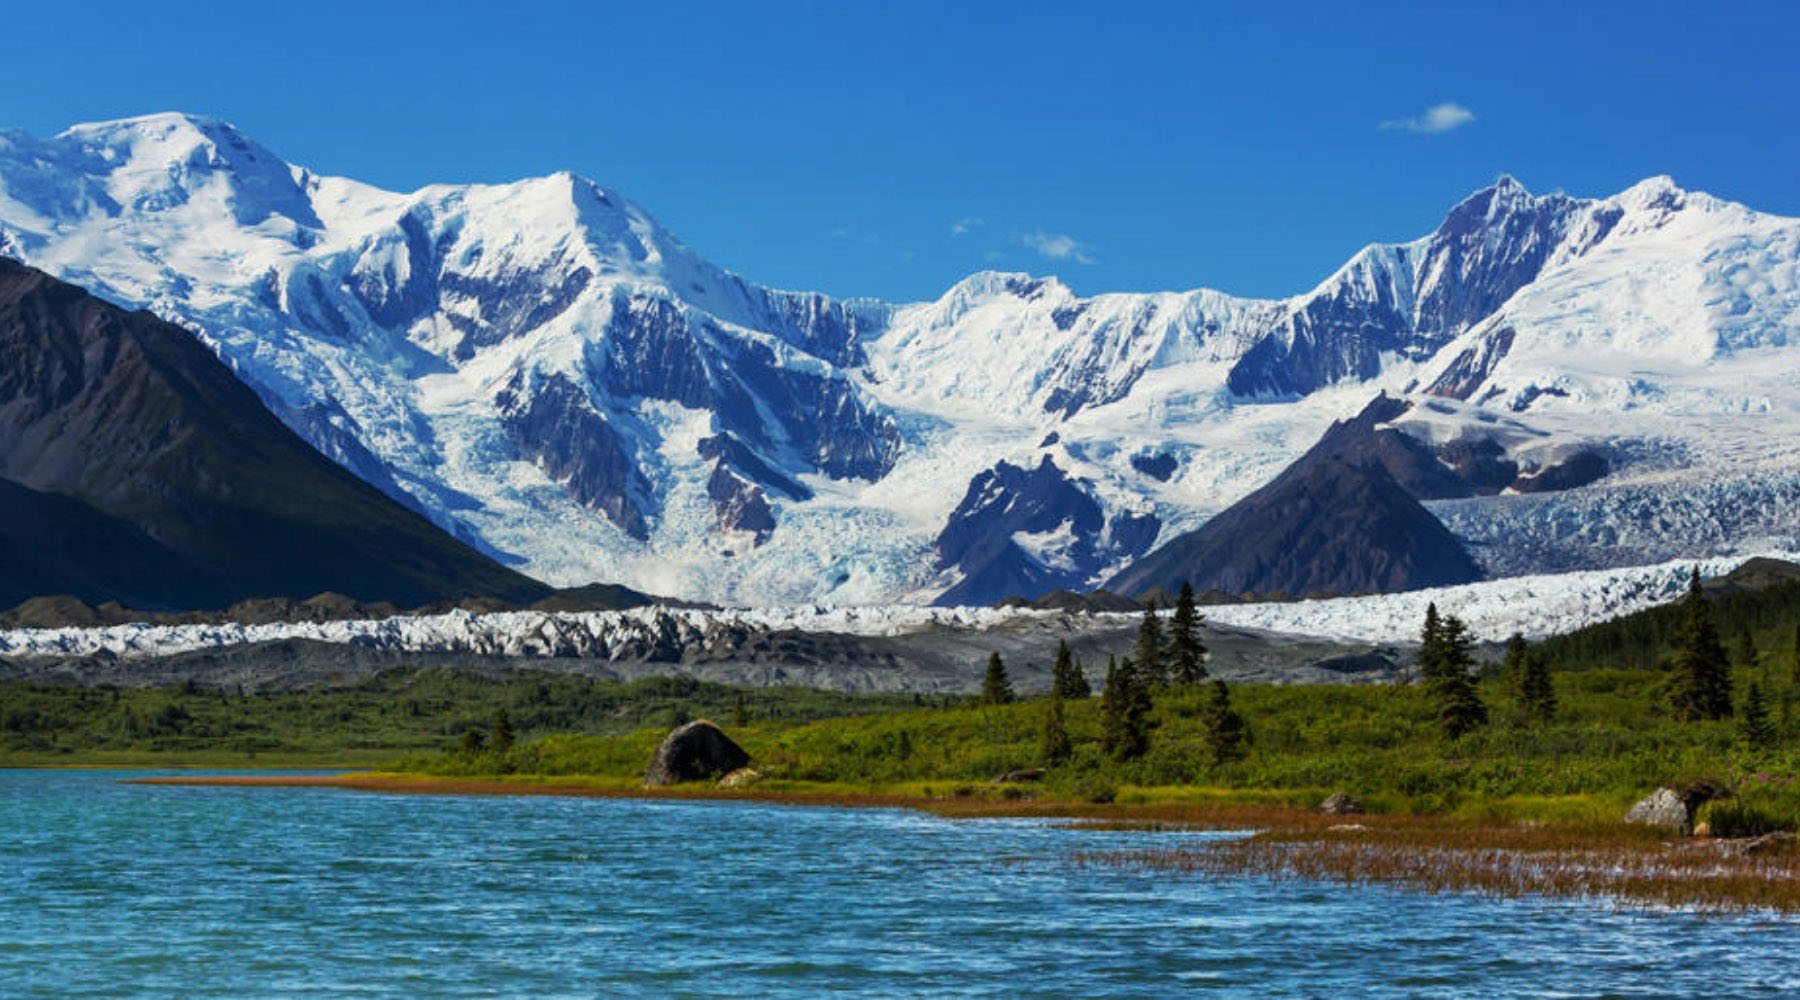 alaska's inside passage landscape of mountains and lake